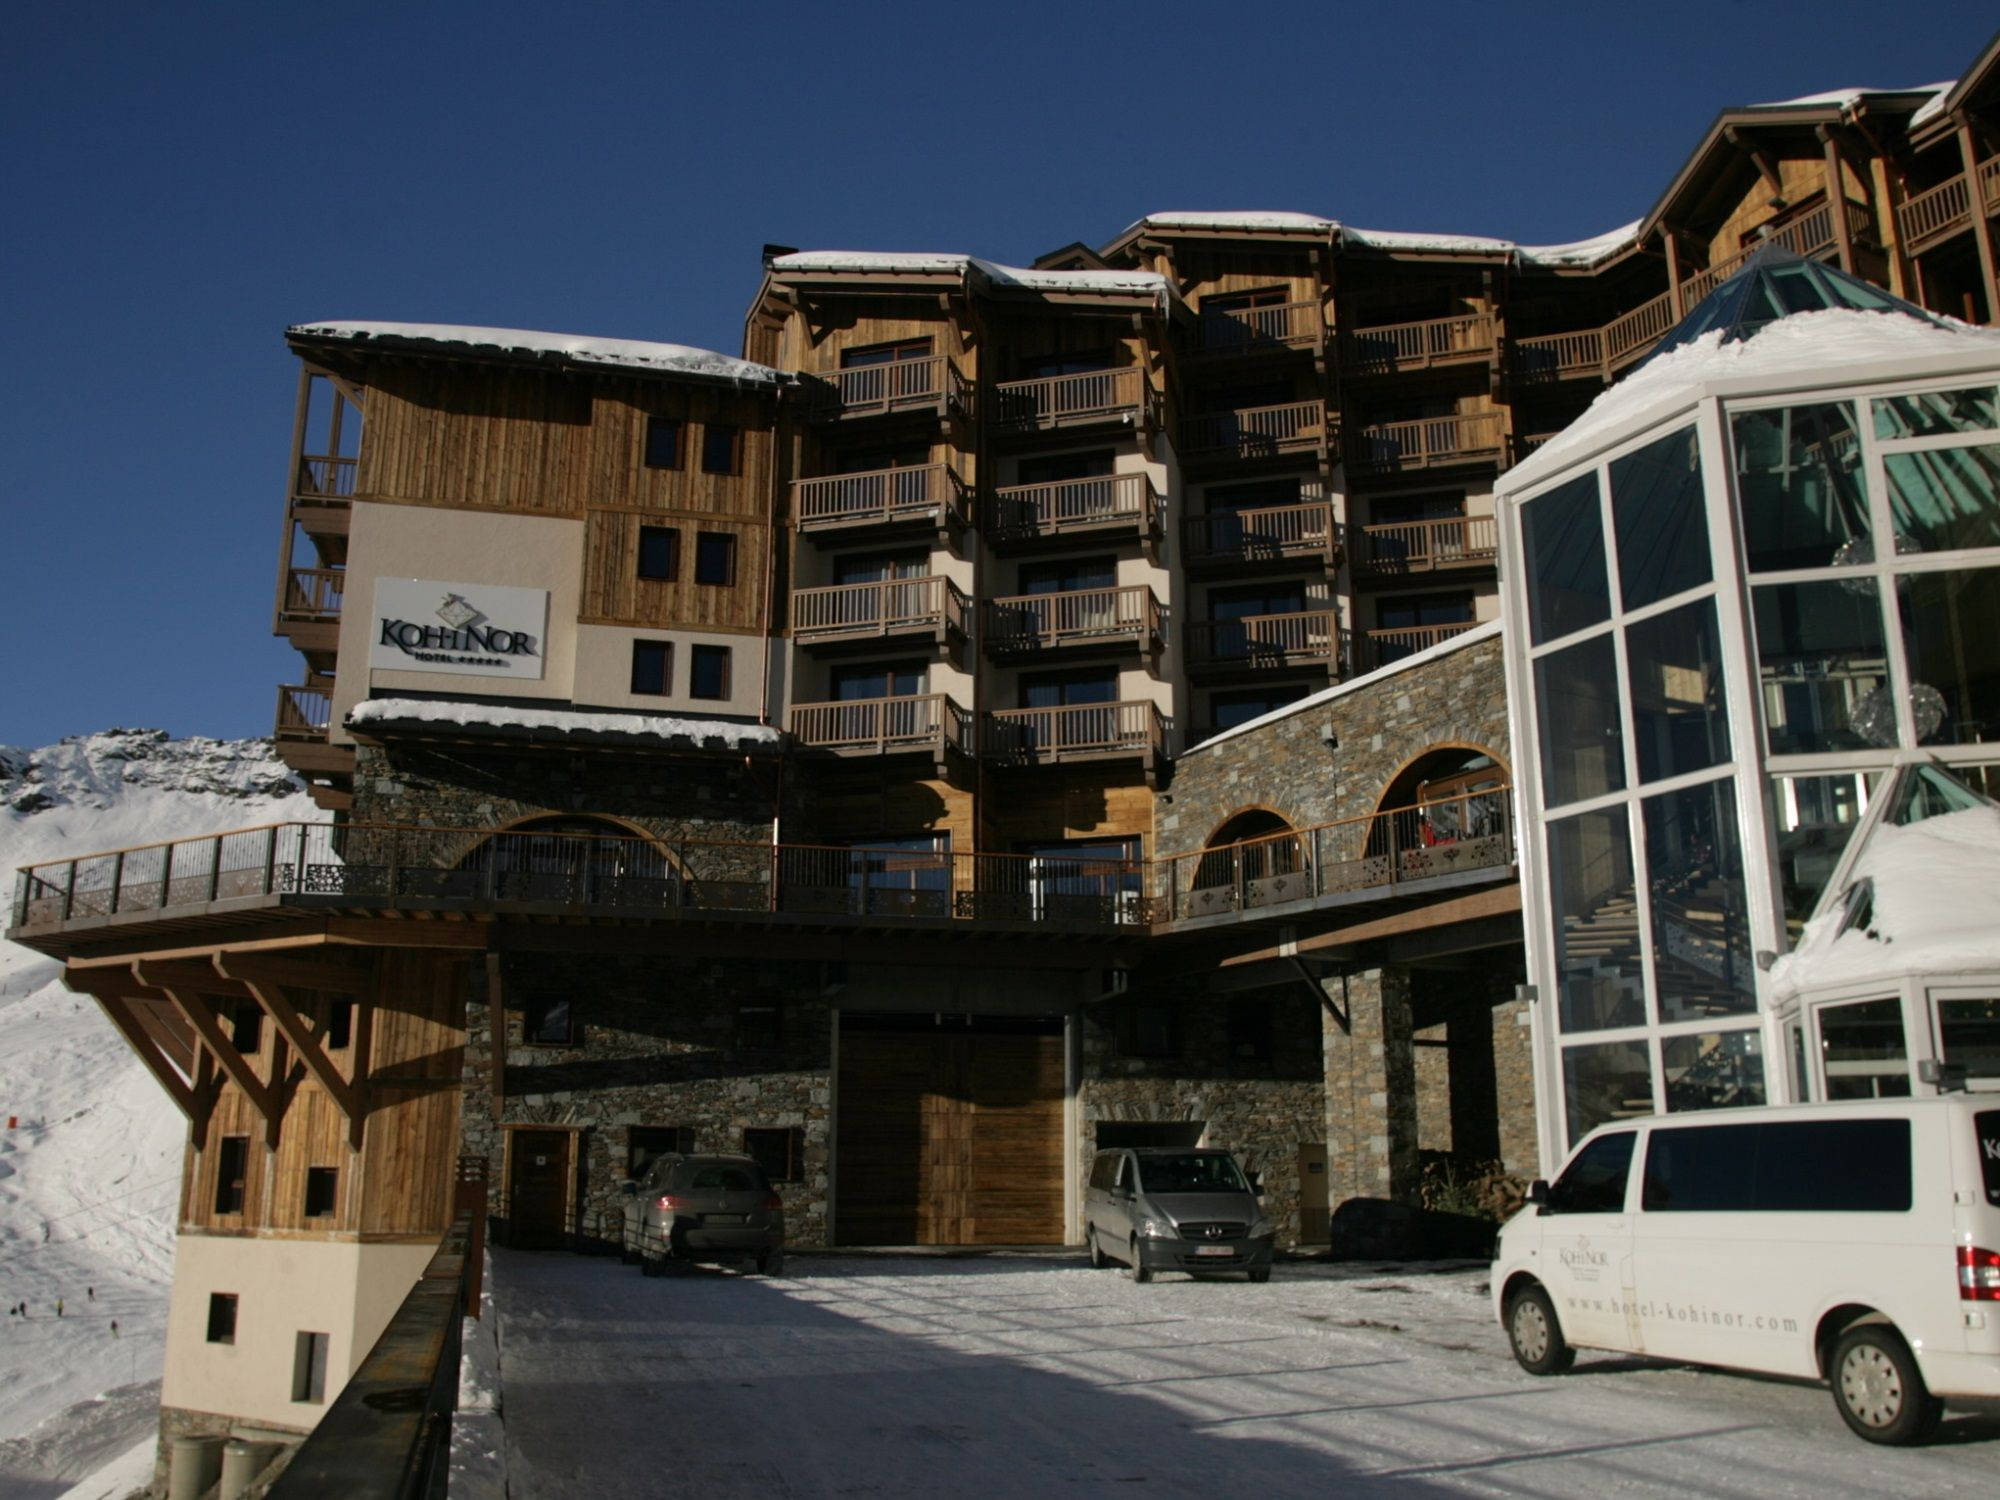 Chalet-appartement Koh-i Nor type A - 81 m² - 6 personen